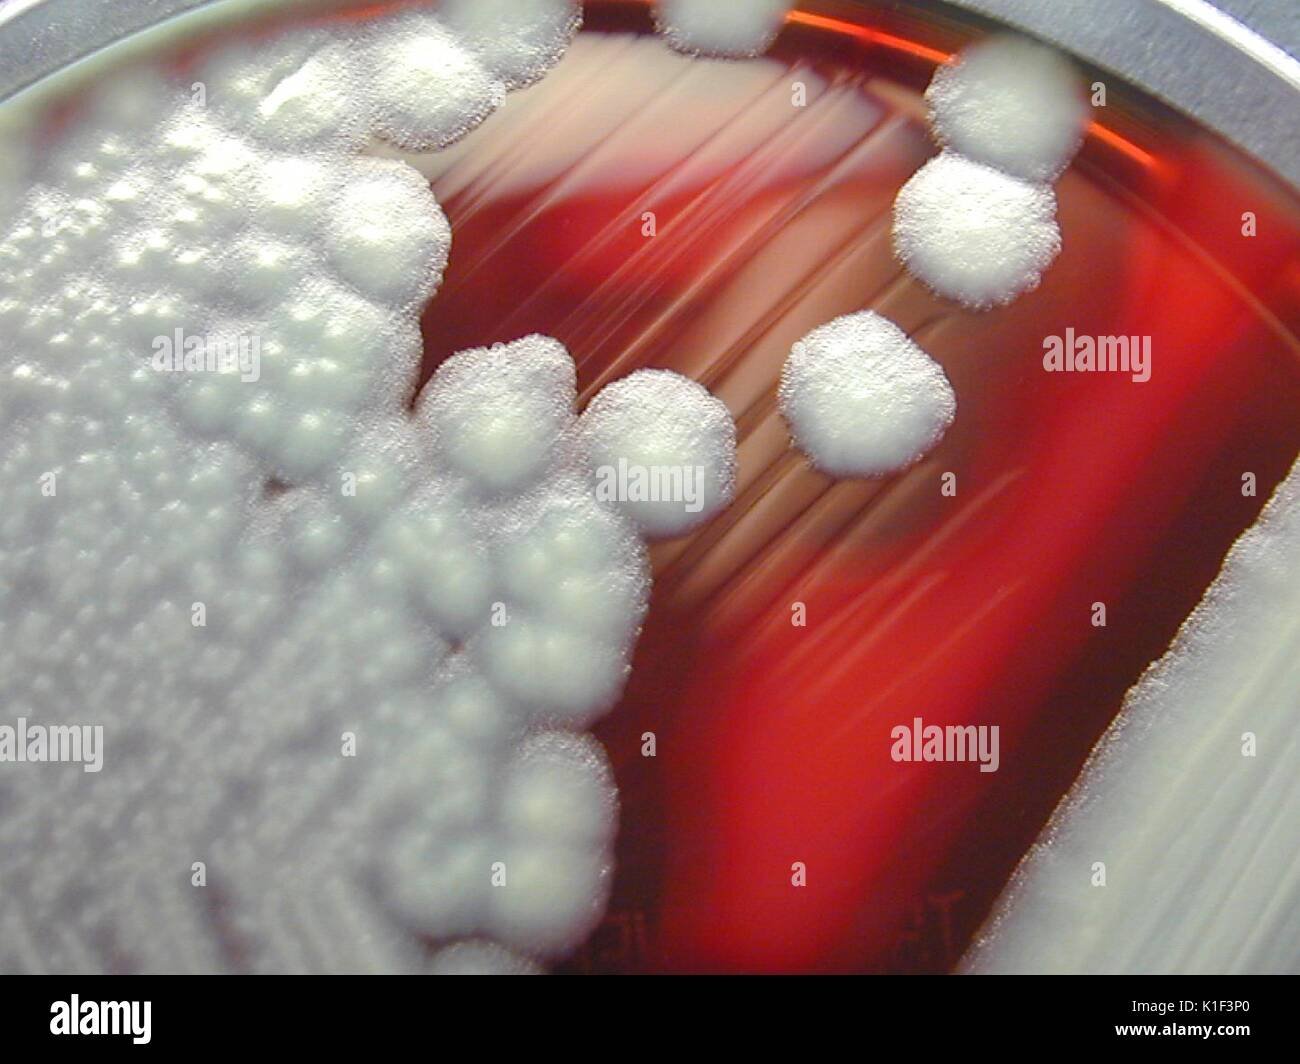 Bacillus cereus showing hemolysis on sheep blood agar. B. cereus is a Gram-positive beta hemolytic bacteria, which may live in an environment with or without the presence of oxygen, i.e. facultative aerobe. Image courtesy CDC/Courtesy of Larry Stauffer, Oregon State Public Health Laboratory, 2002. - Stock Image